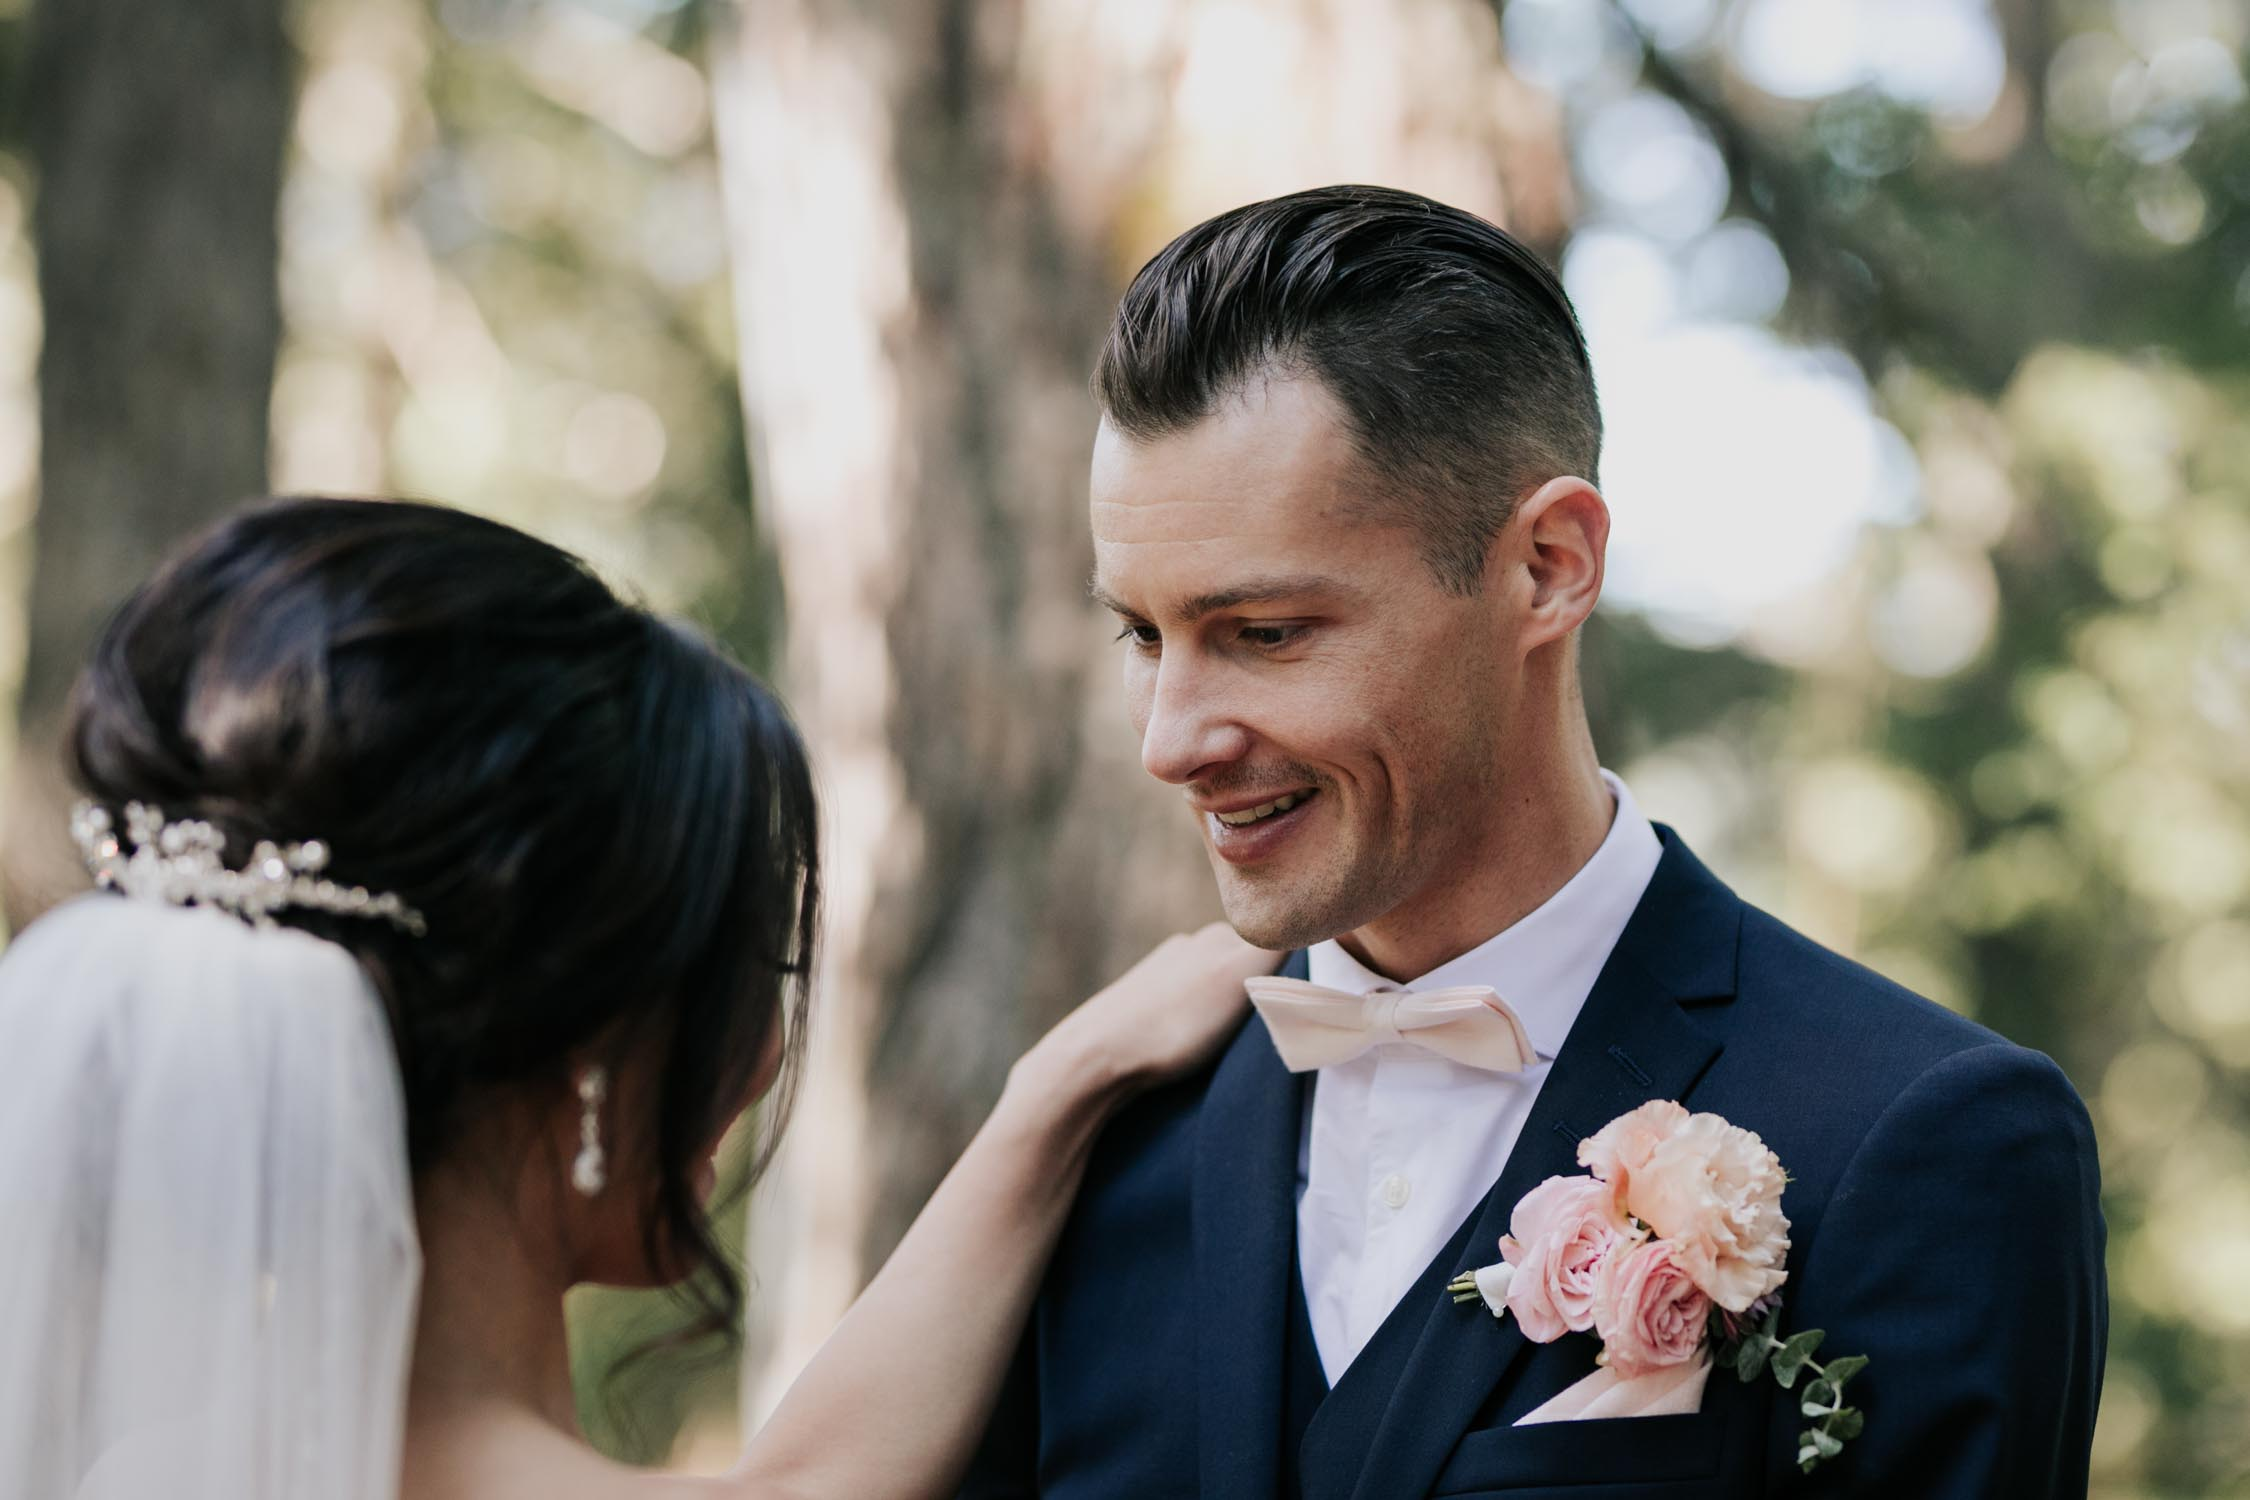 Emotional Groom Sees Bride First Look Wedding Day Grouse Mountain